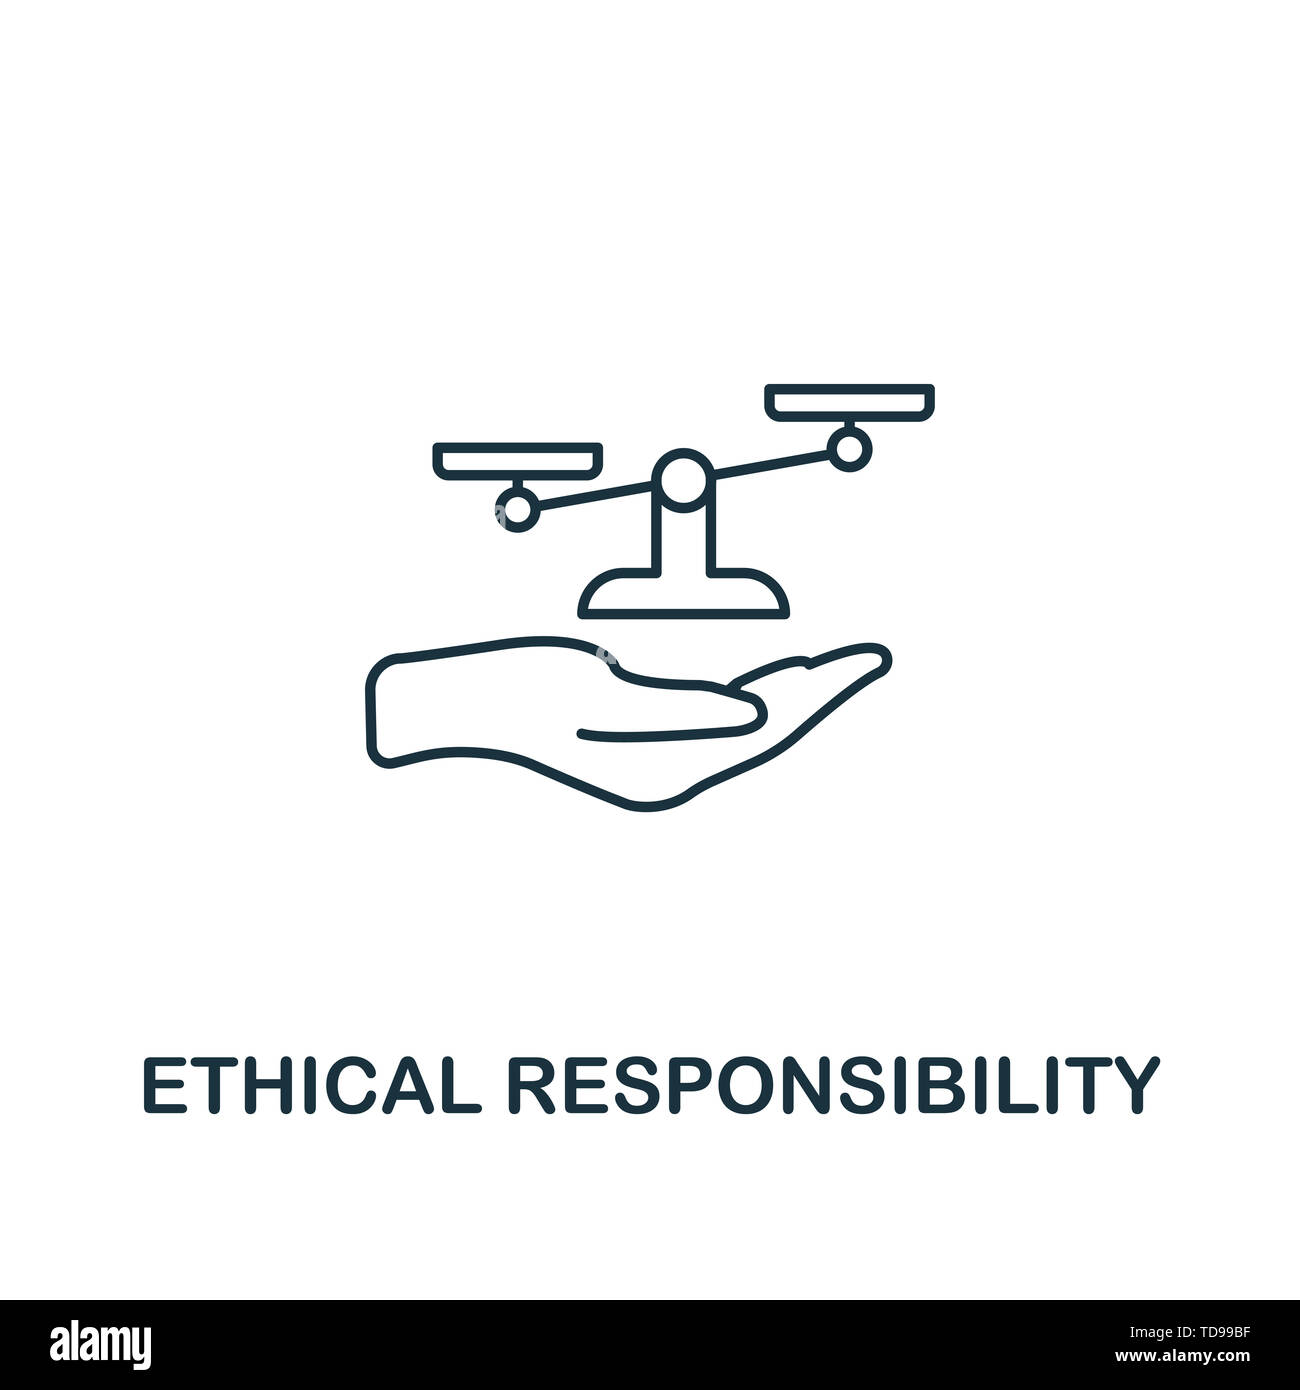 Ethical Responsibility icon. Thin line design symbol from business ethics icons collection. Pixel perfect ethical responsibility icon for web design,  - Stock Image